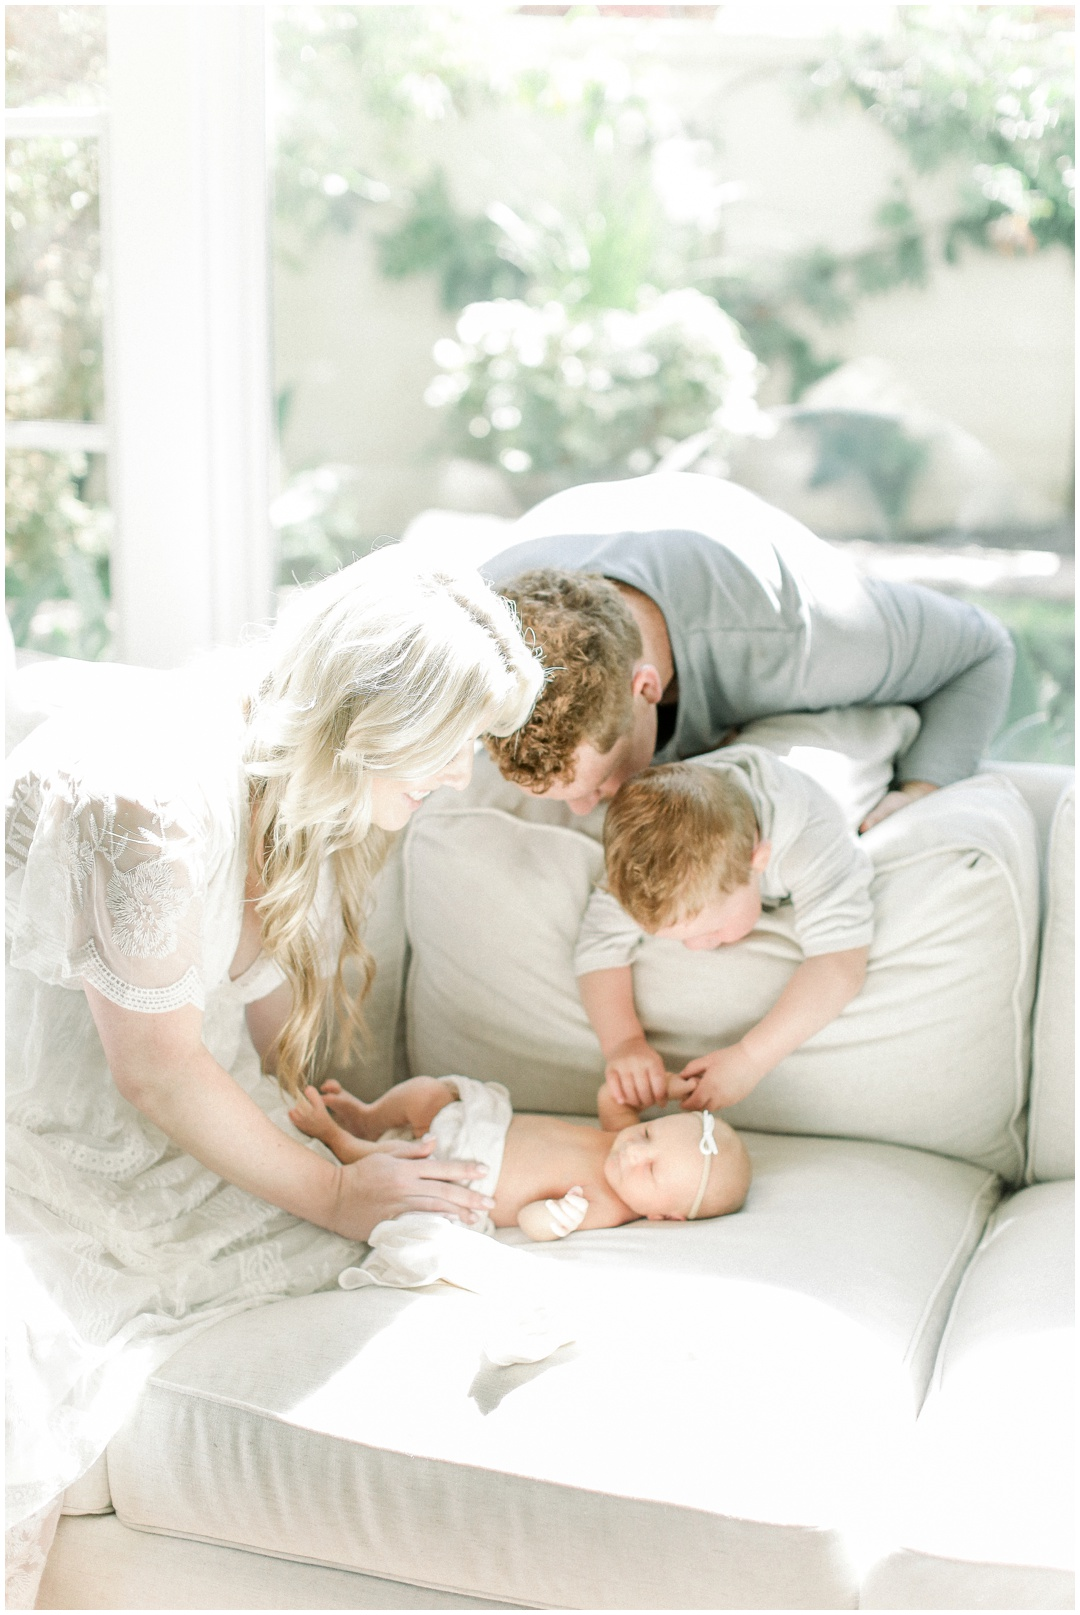 Newport_Beach_Newborn_Light_Airy_Natural_Photographer_Newport_Beach_Photographer_Orange_County_Family_Photographer_Cori_Kleckner_Photography_Newport_Beach_Photographer_newborn_kole_calhoun56_kole_calhoun_Jennifer_Calhoun_Knox_Calhoun_3757.jpg